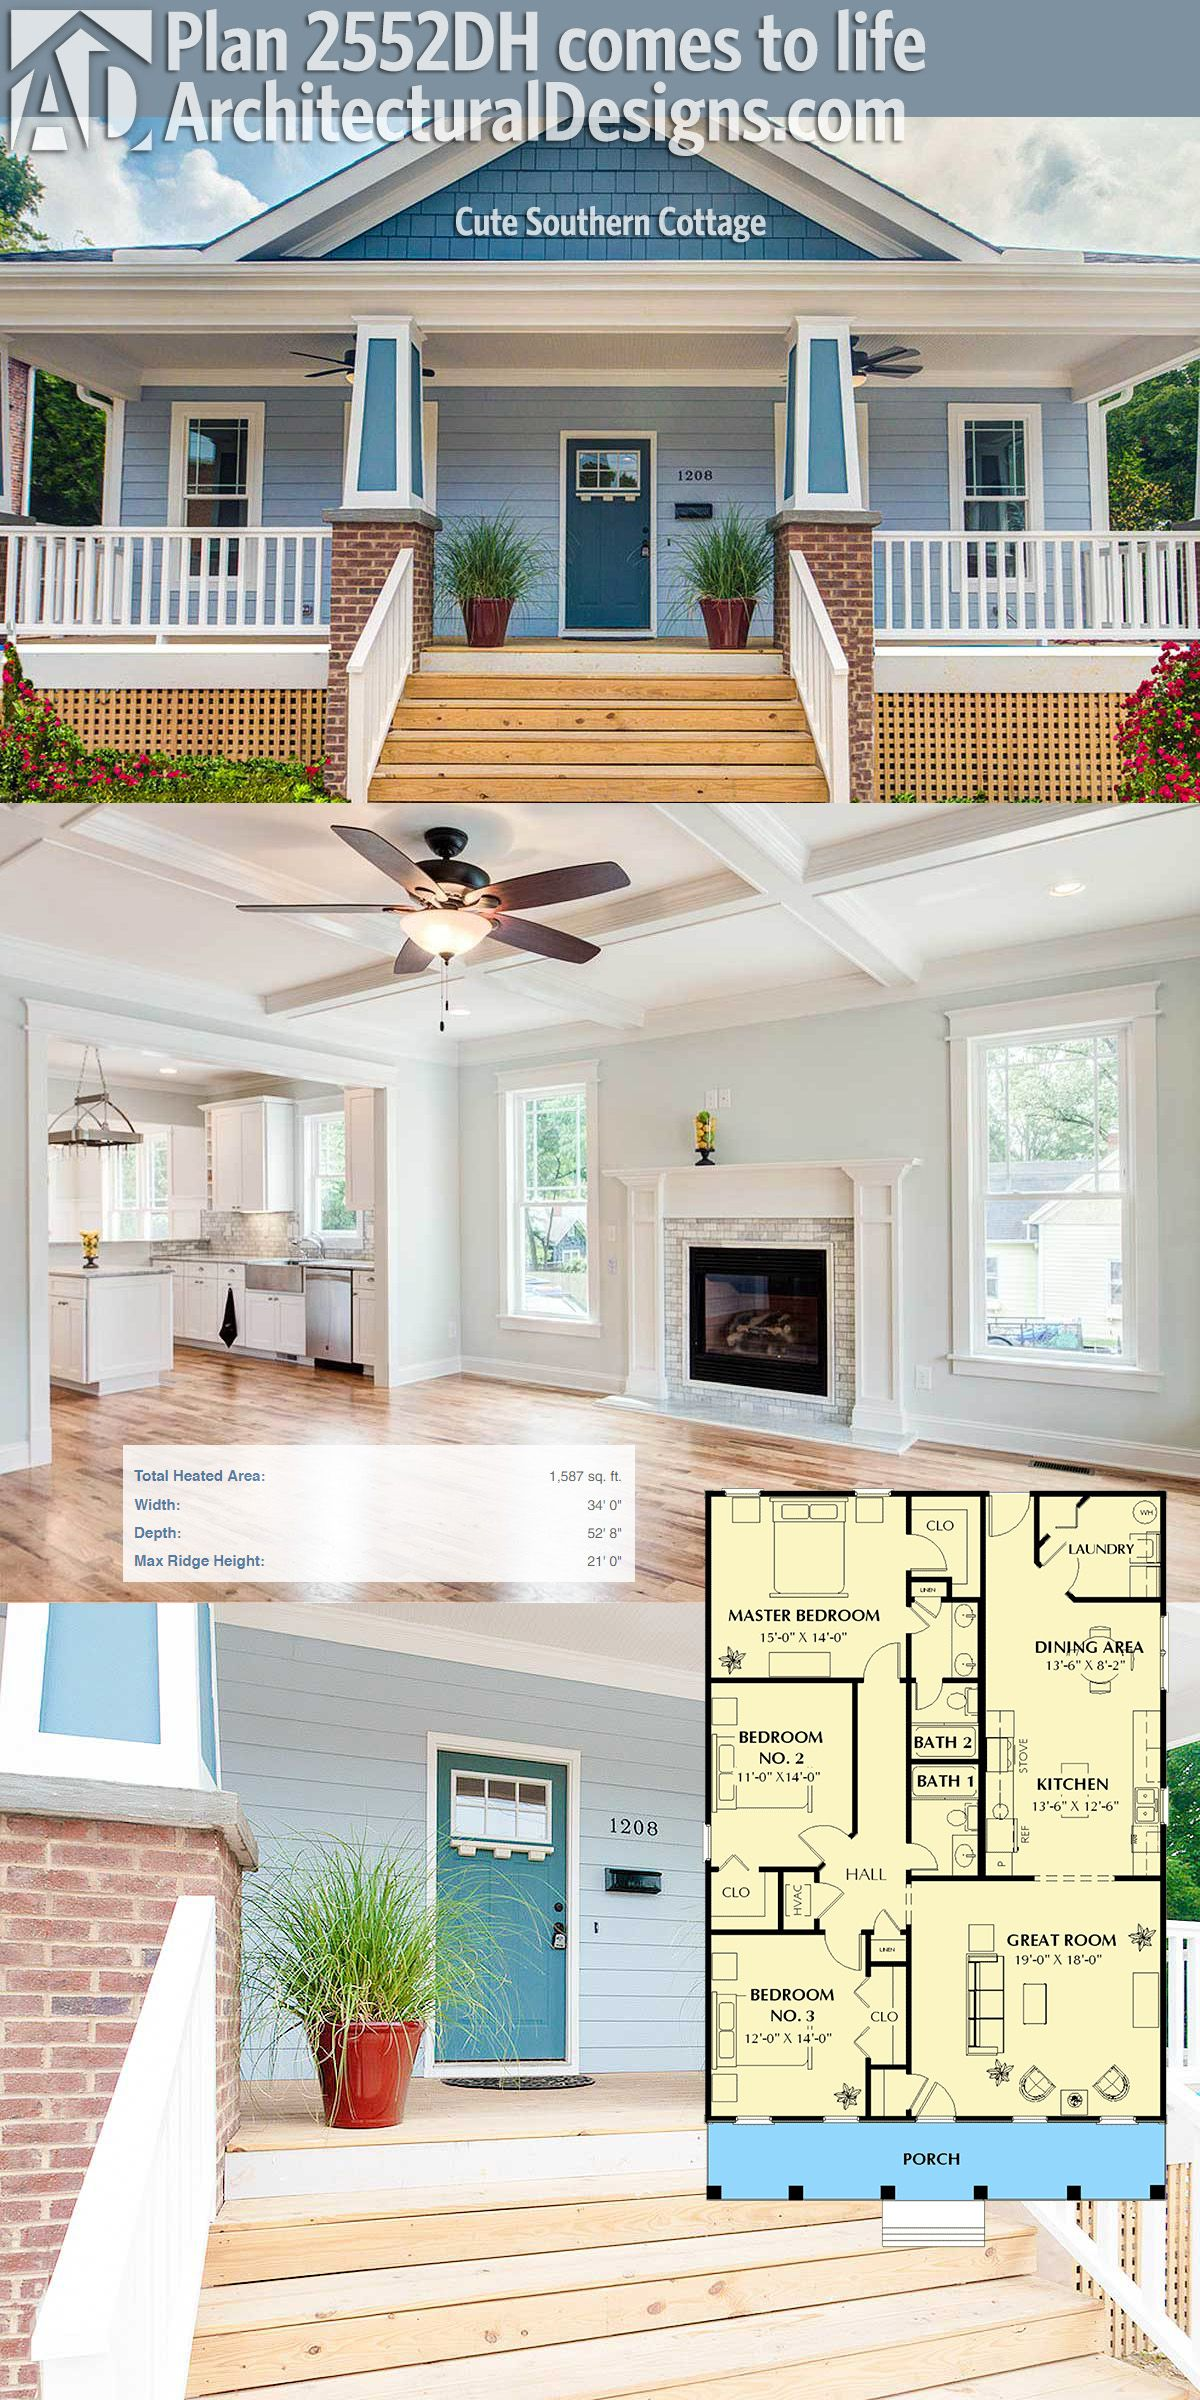 Plan 2552DH Cute Southern Cottage